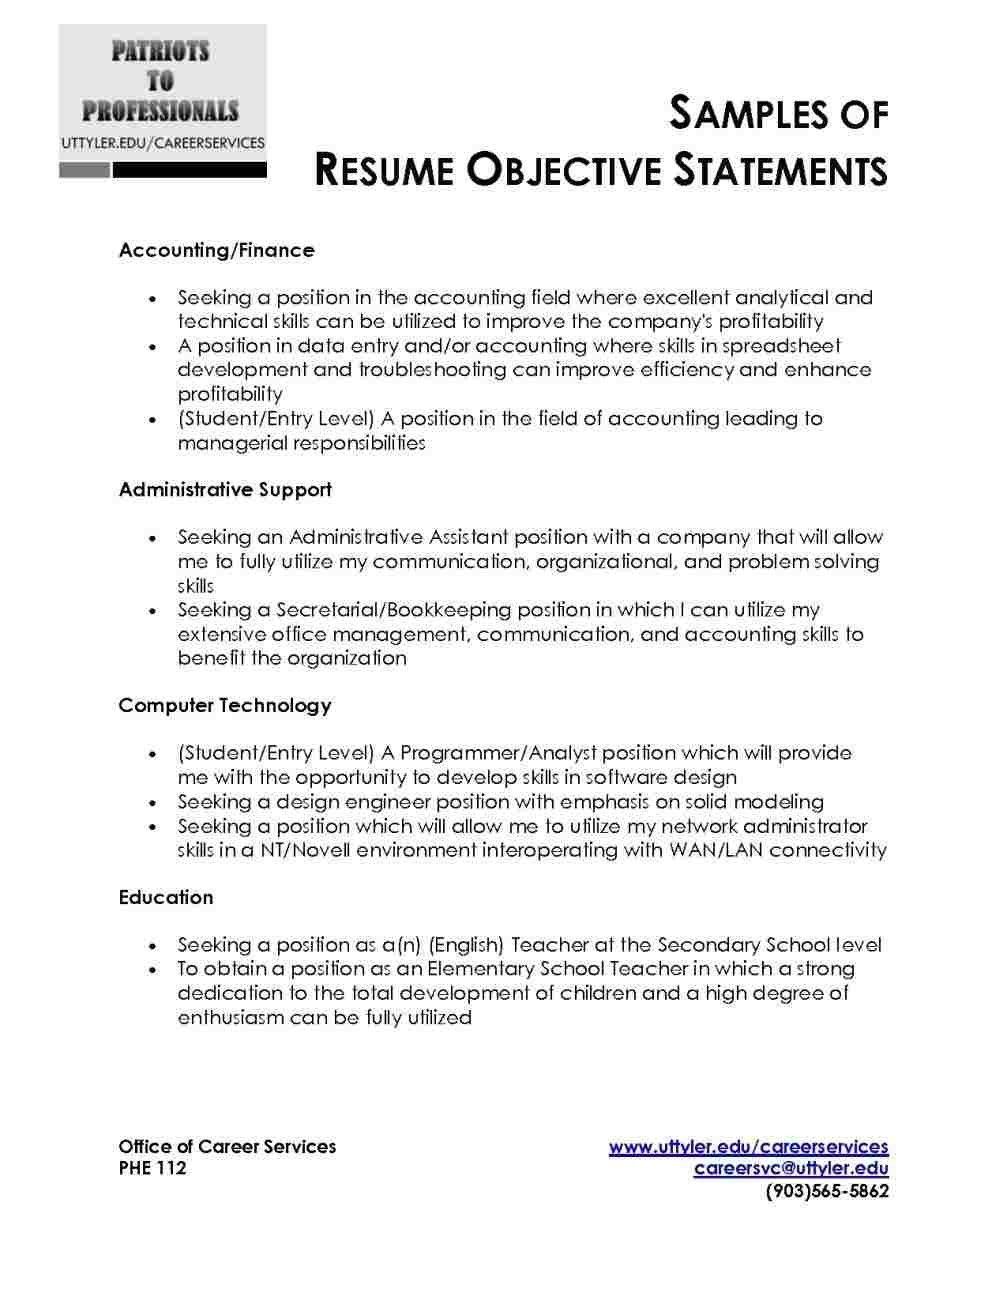 Sample Resume for Accountants In the Philippines Outstanding Sample Resume Of An Accountant In the